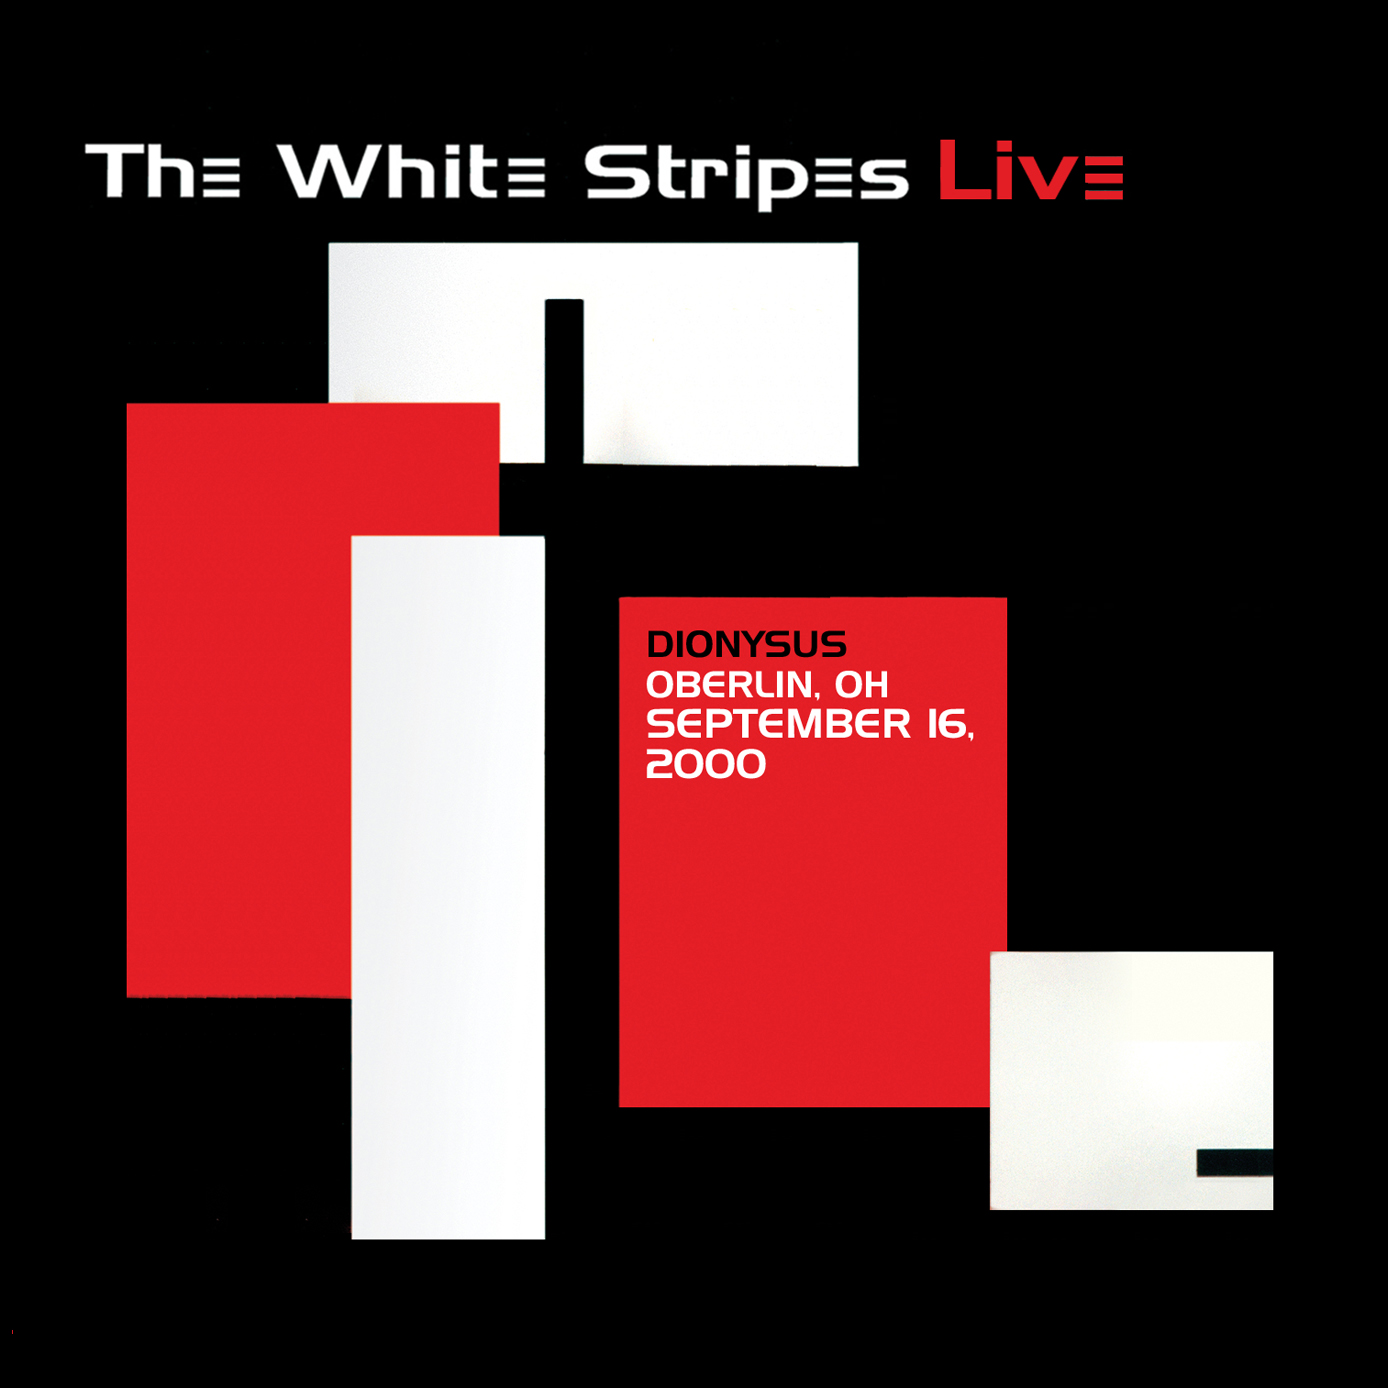 The White Stripes Legendary Oberlin 2000 Show is Available Now